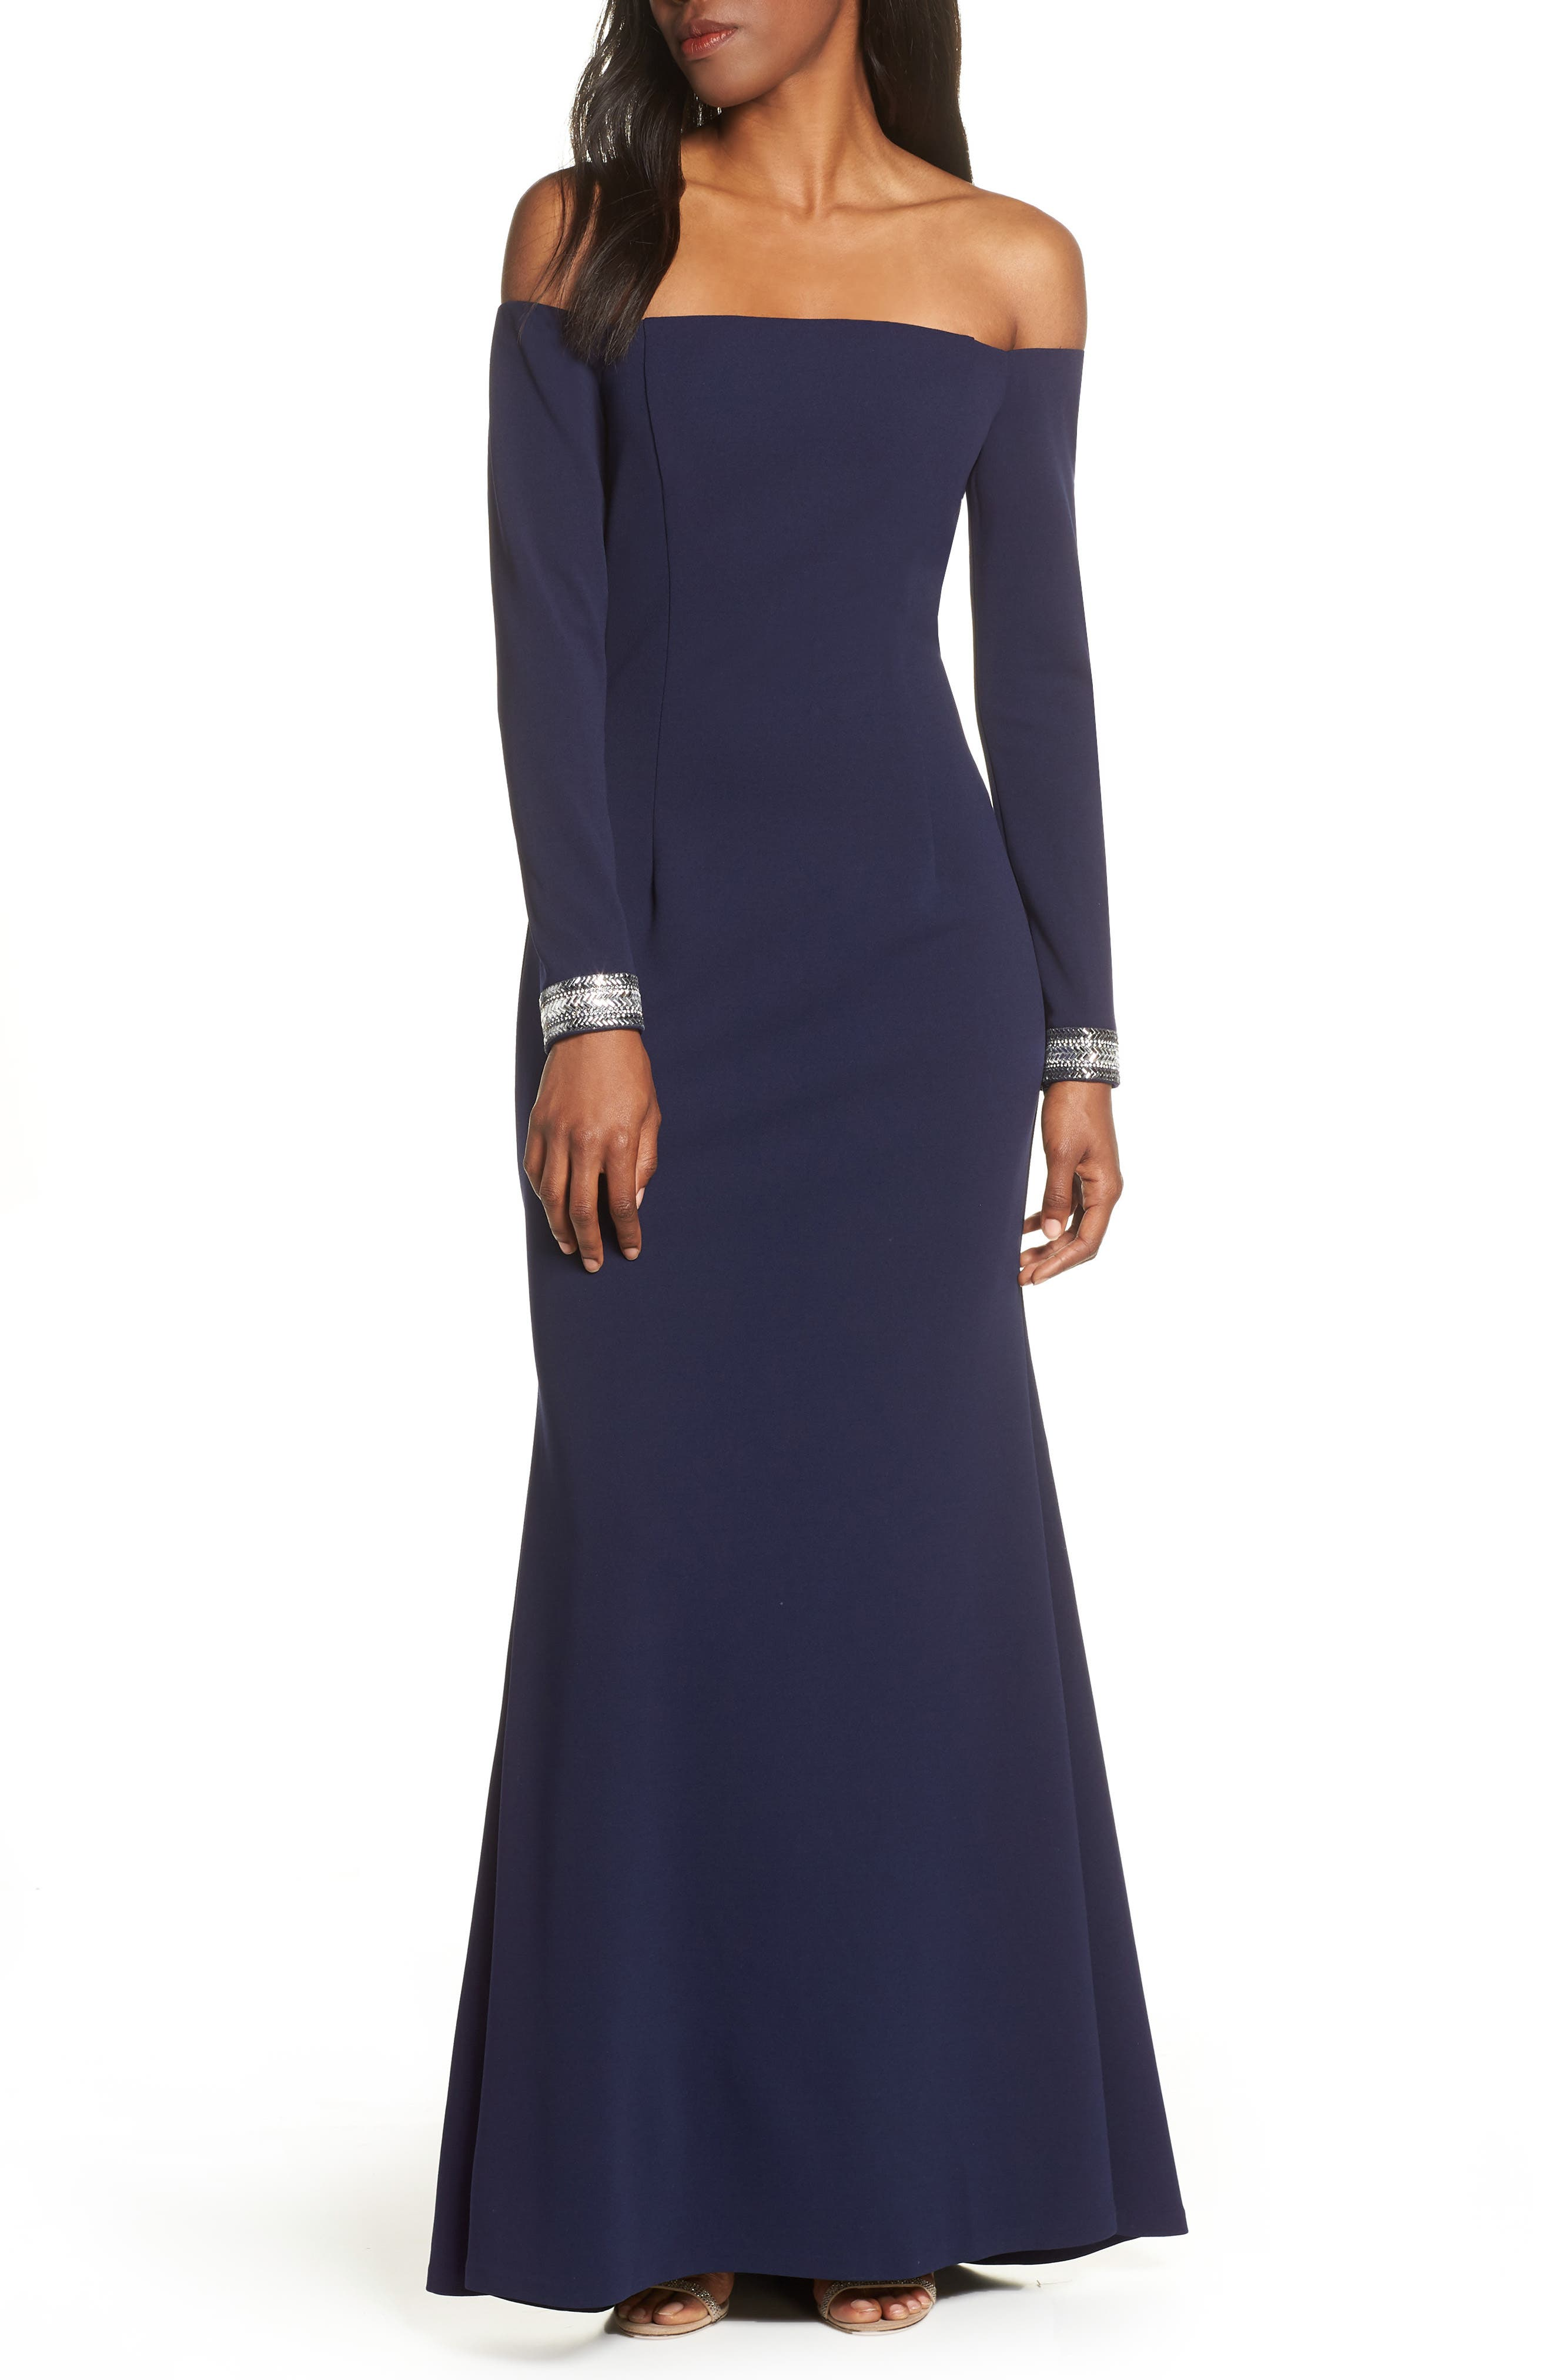 Petite Vince Camuto Crystal Cuff Off The Shoulder Long Sleeve Crepe Dress, Blue